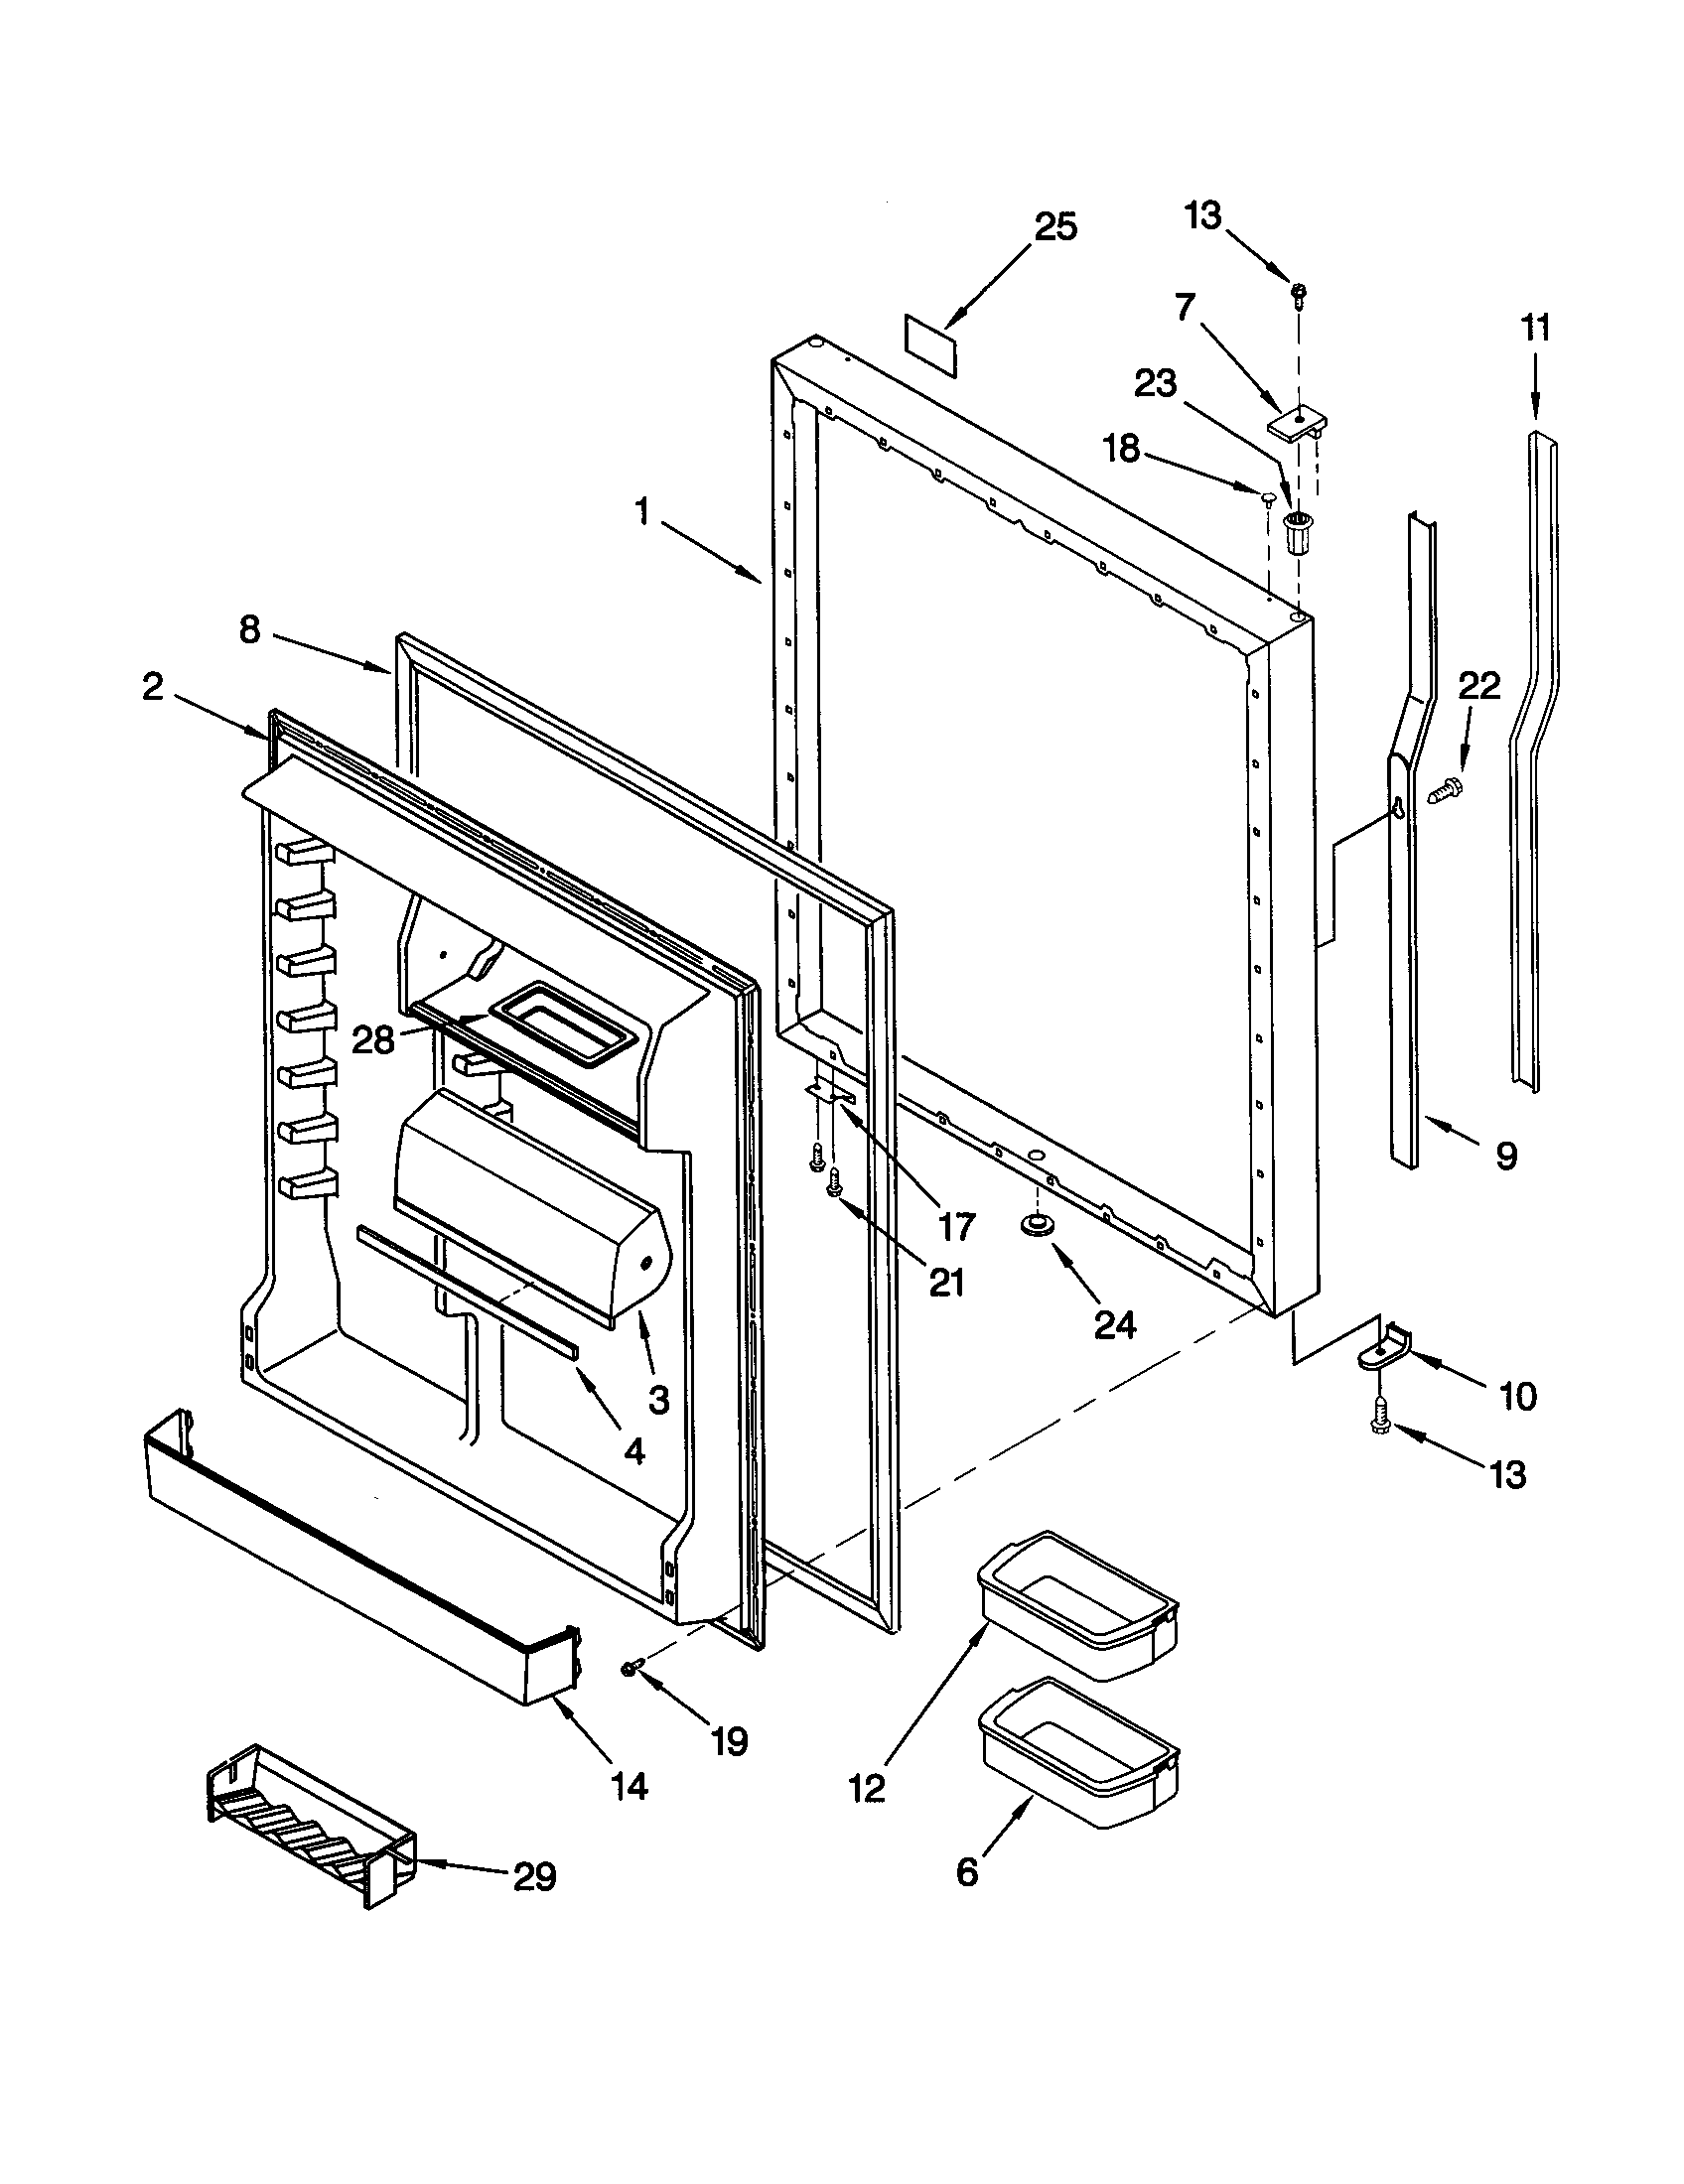 KitchenAid KBRS22KGWH1 refrigerator door diagram